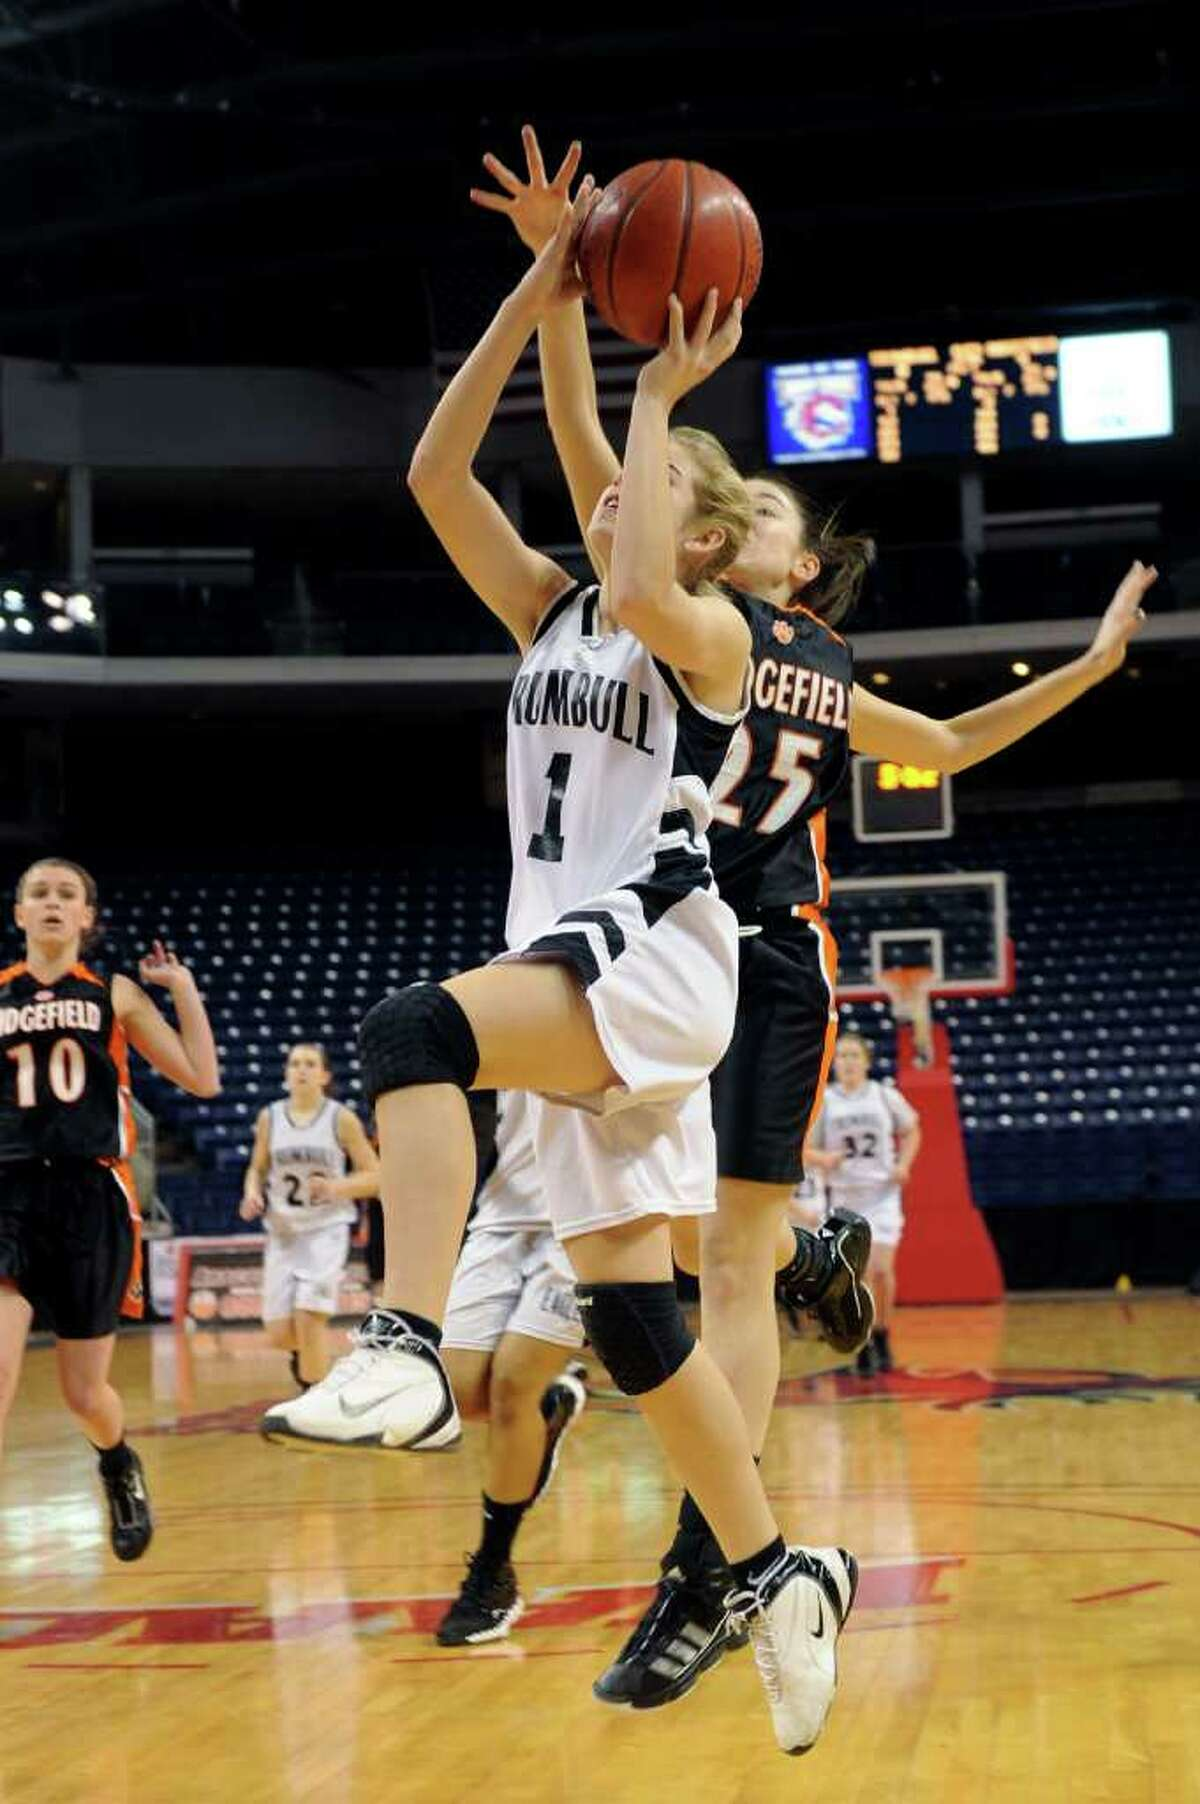 Trumbull's Alexa Pfohl puts up a shot as Ridgefield's Molly Welch defends during Thursday's FCIAC girls basketball championship game at Webster Bank Arena at Harbor Yard on February 24, 2011. Pfohl was named Most Valuable Player after the game.